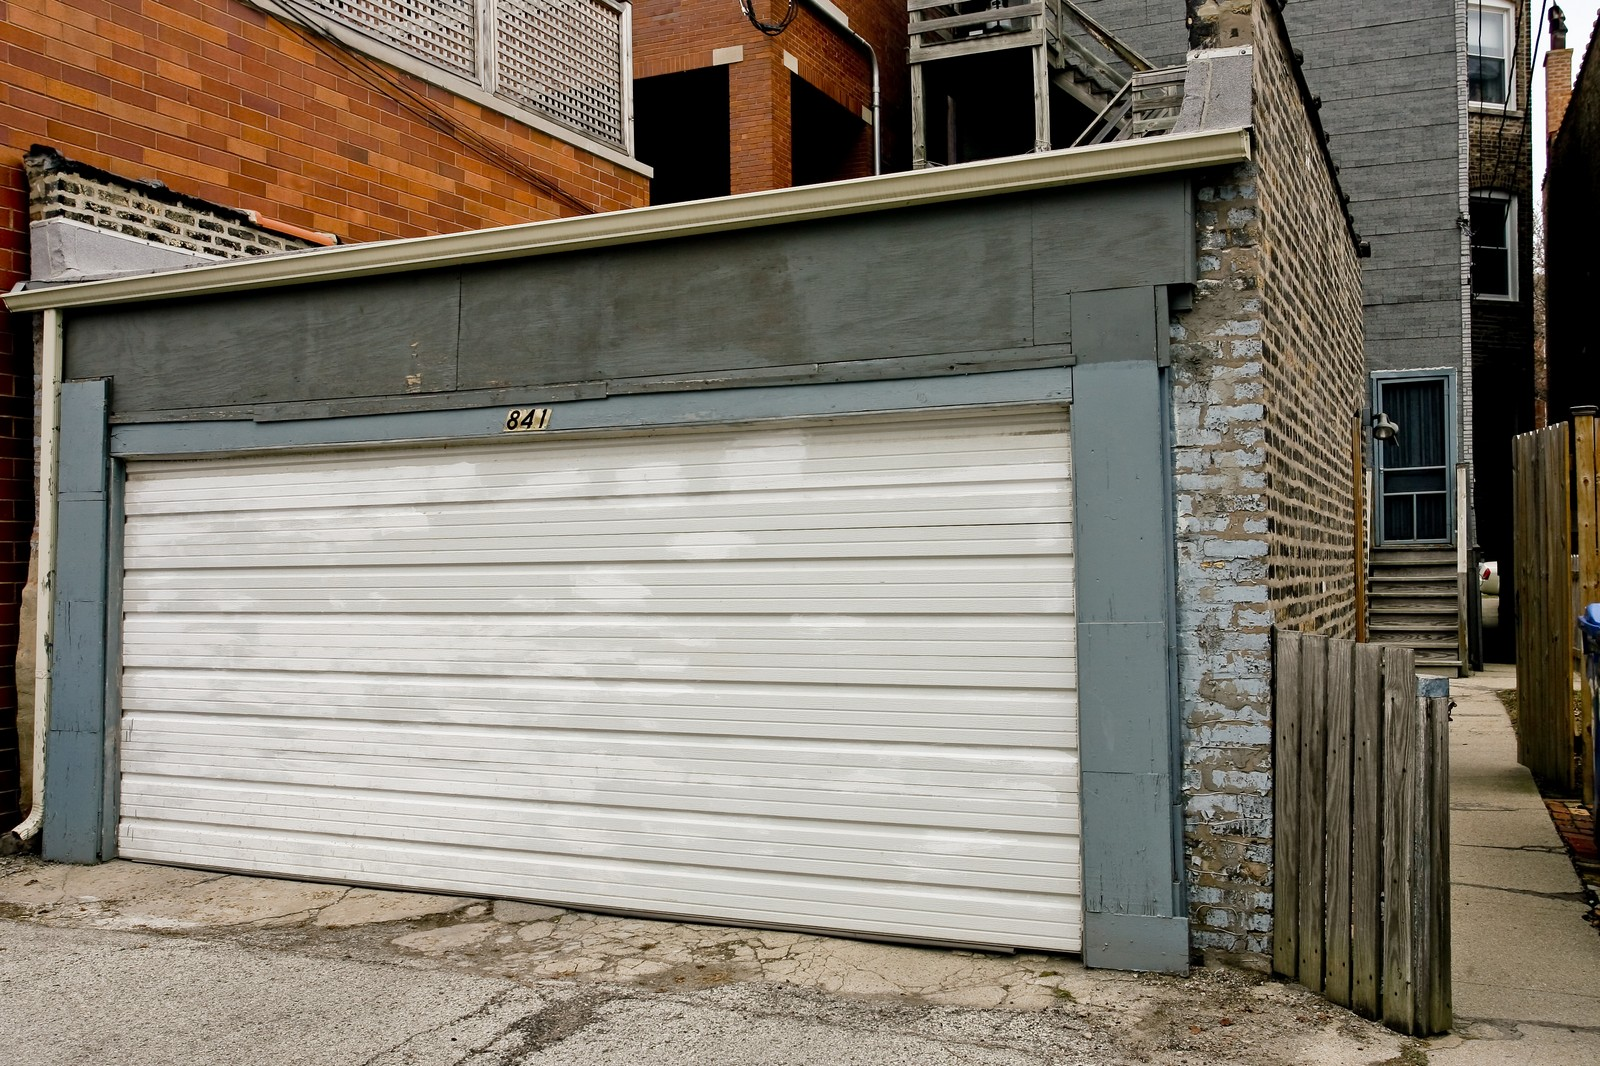 Real Estate Photography - 841 W George, Chicago, IL, 60657 - Garage